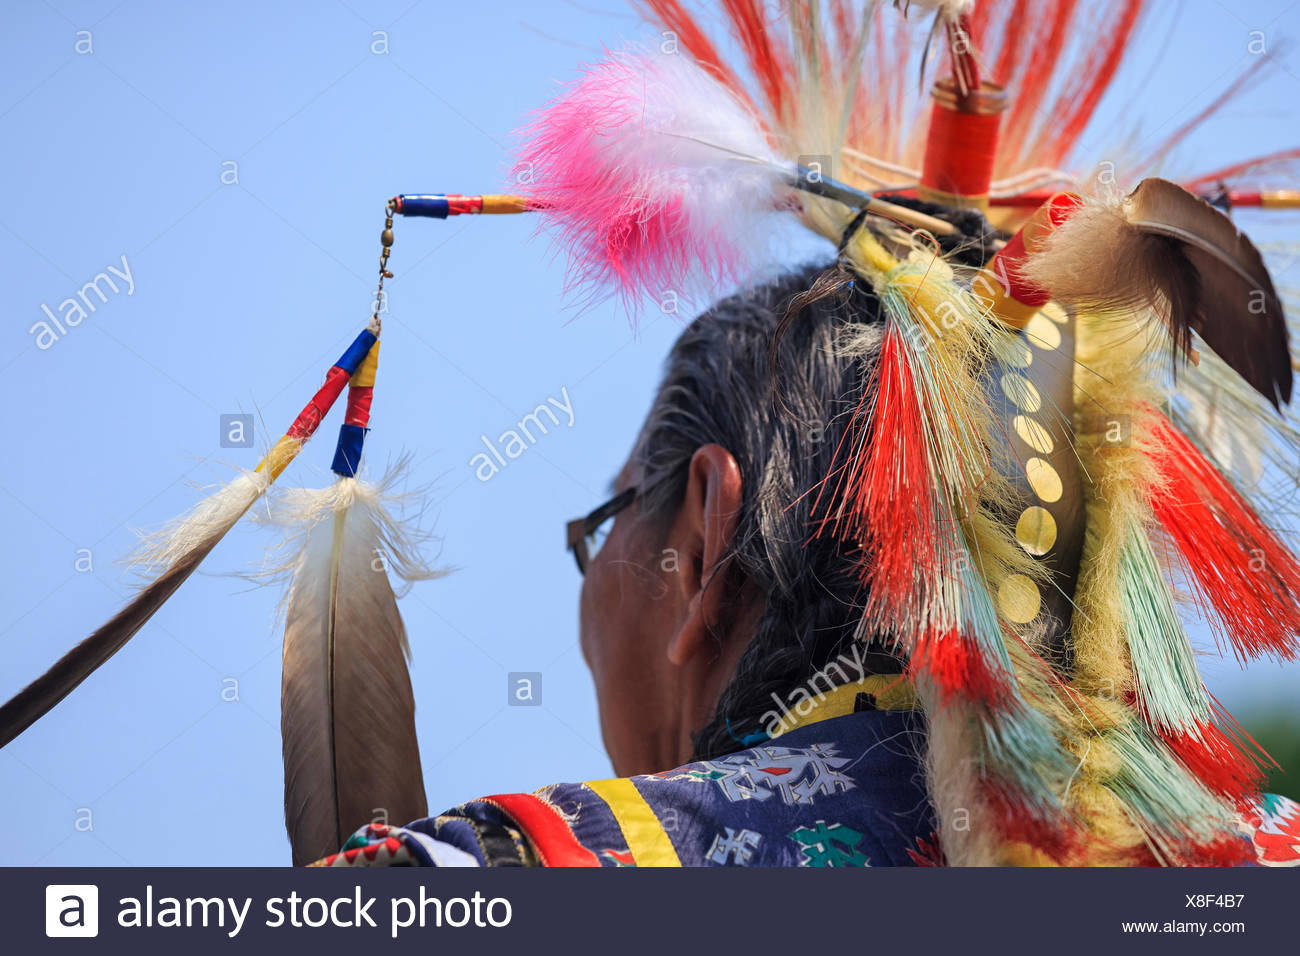 First Nations Elder in traditional headdress, Winnipeg, Manitoba, Canada - Stock Image